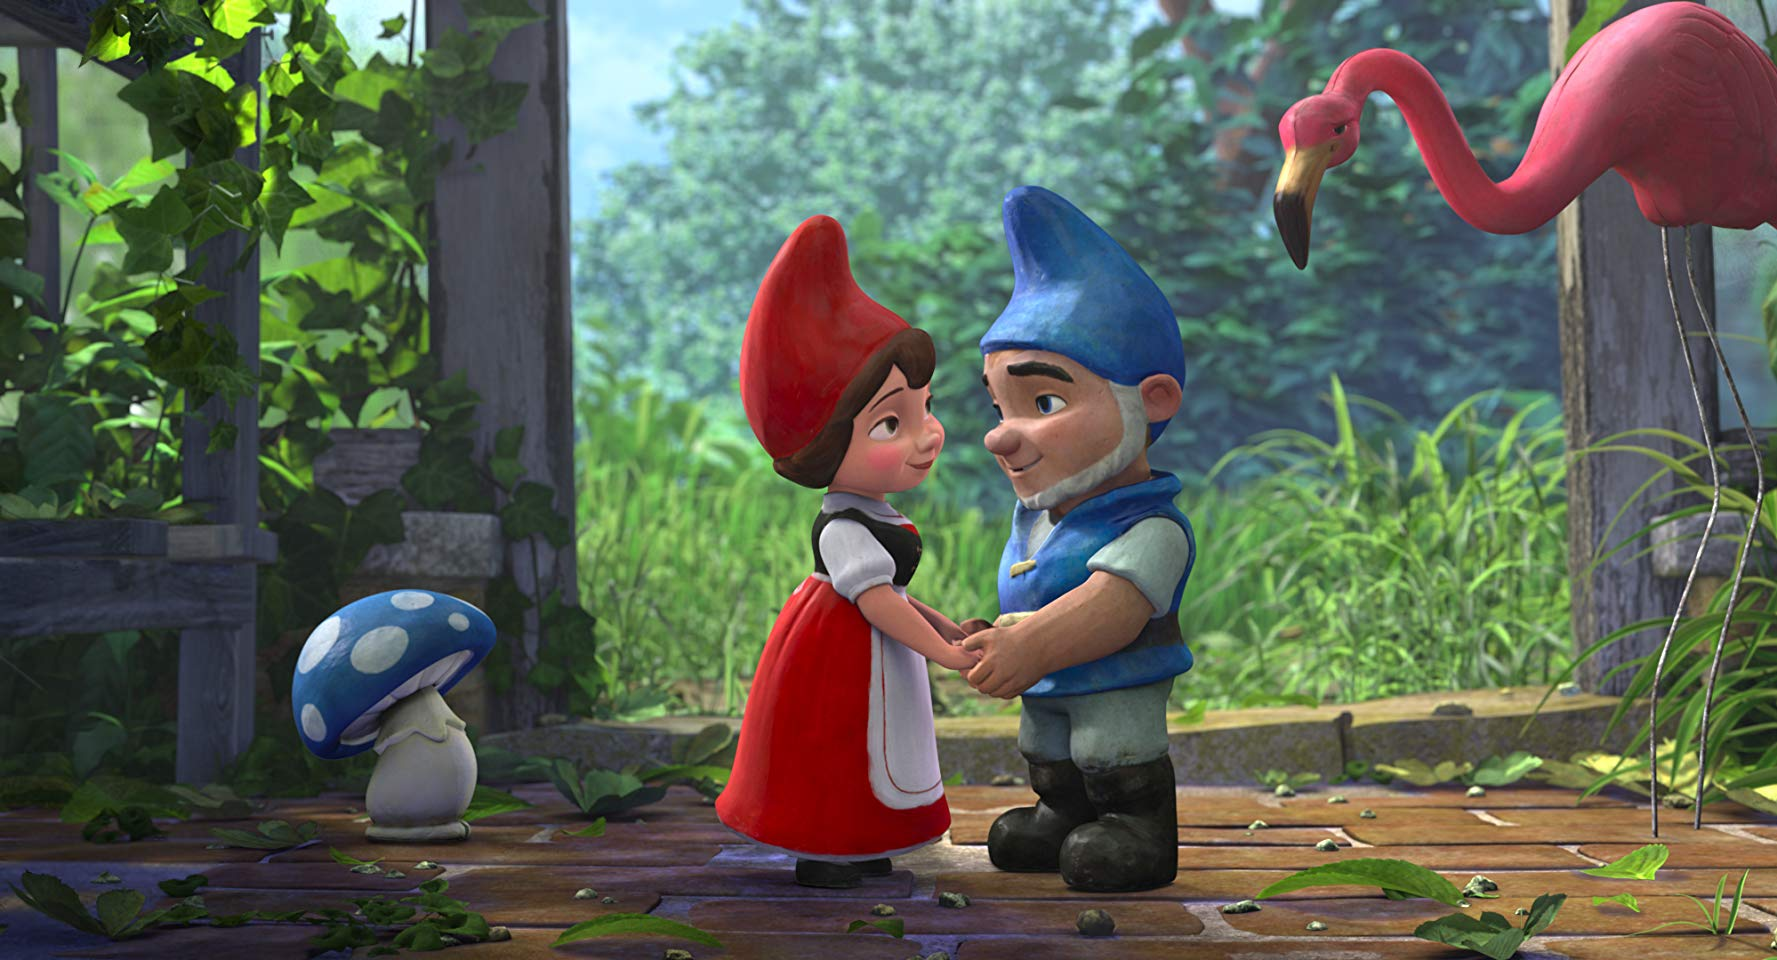 Romeo and Juliet retold with talking garden gnomes - Gnomeo (voiced by James McAvoy) and Juliet (voiced by Emily Blunt) in Gnomeo & Juliet (2011)